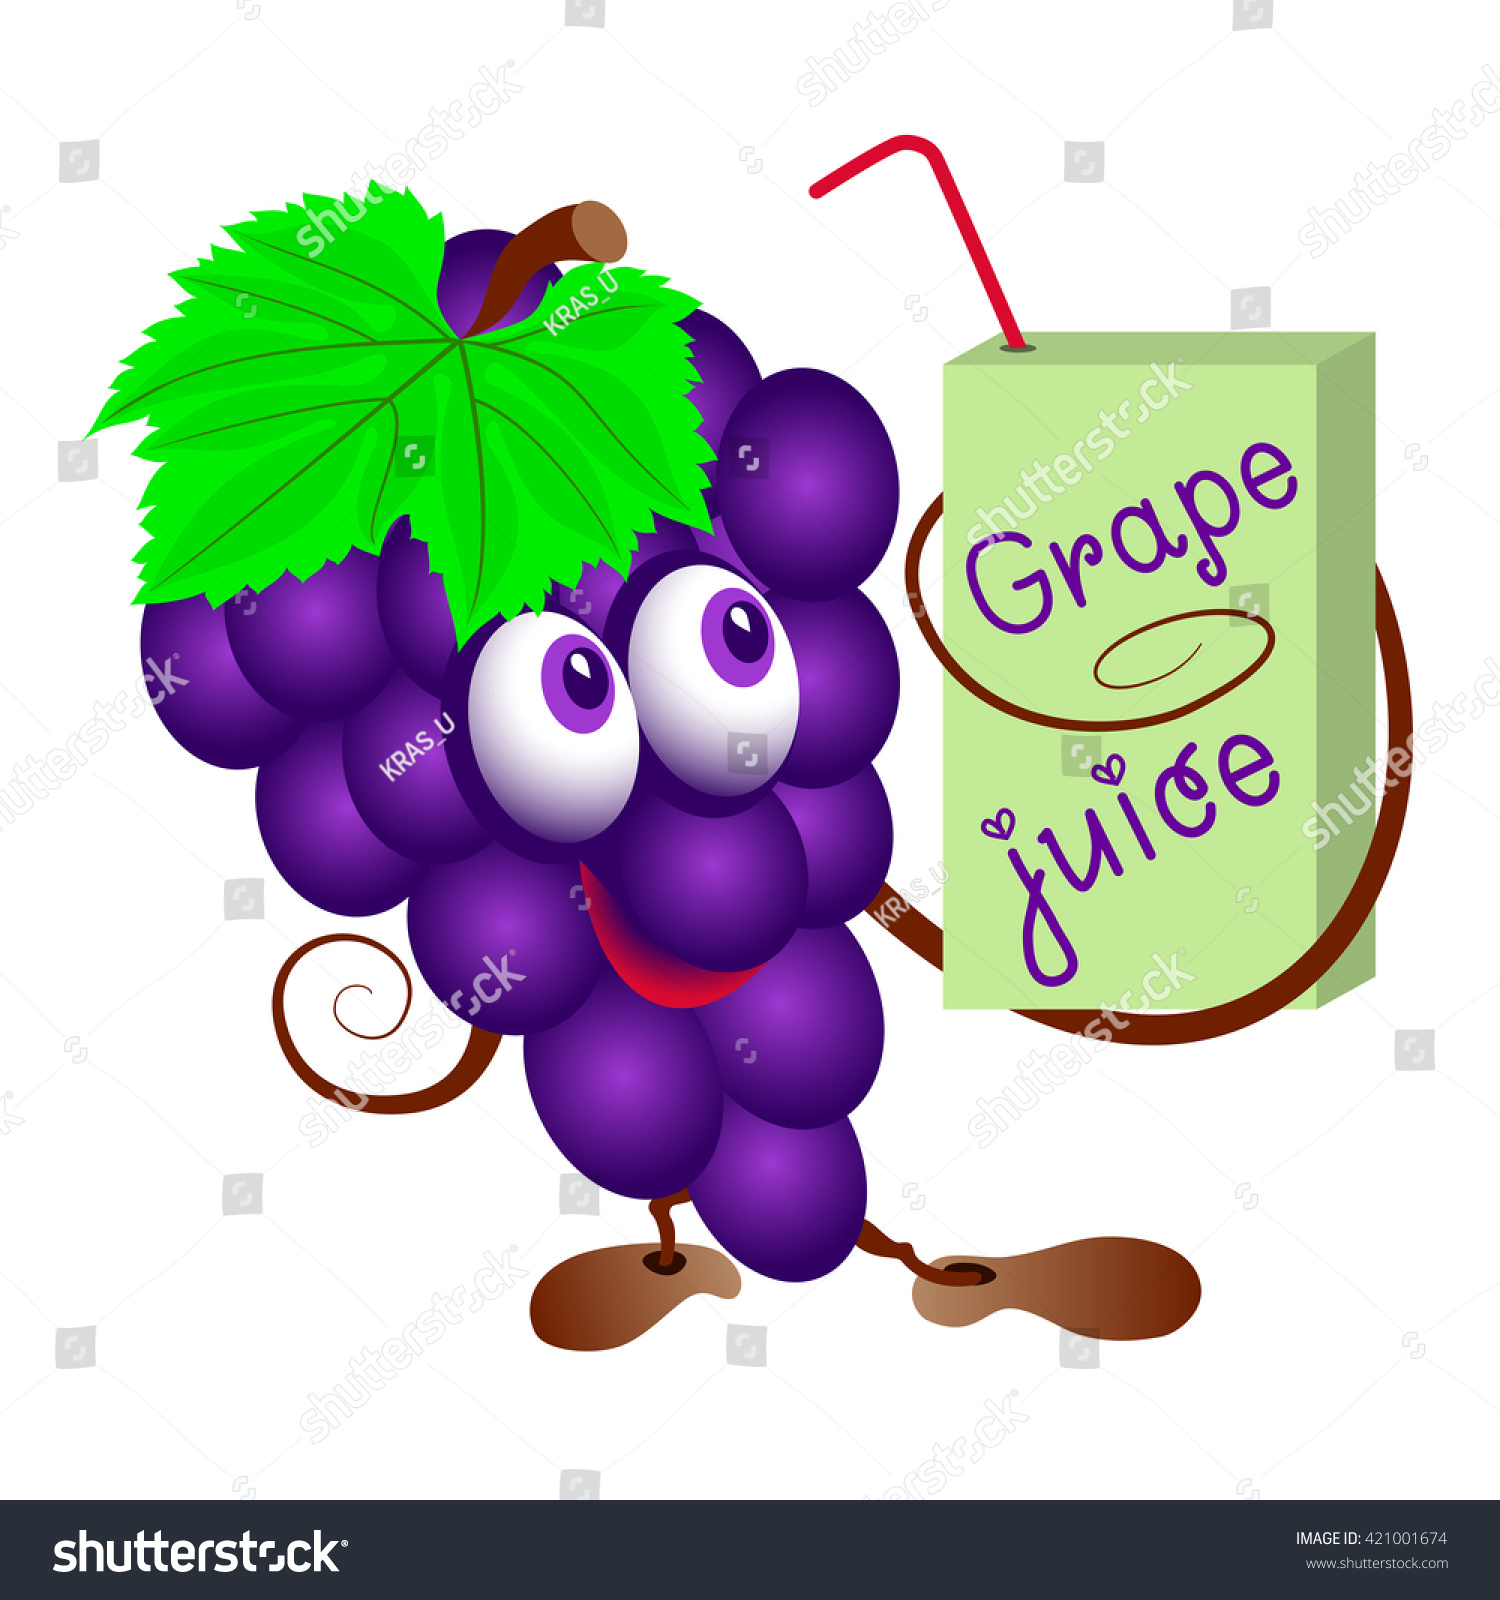 how to make grape juice with green grapes